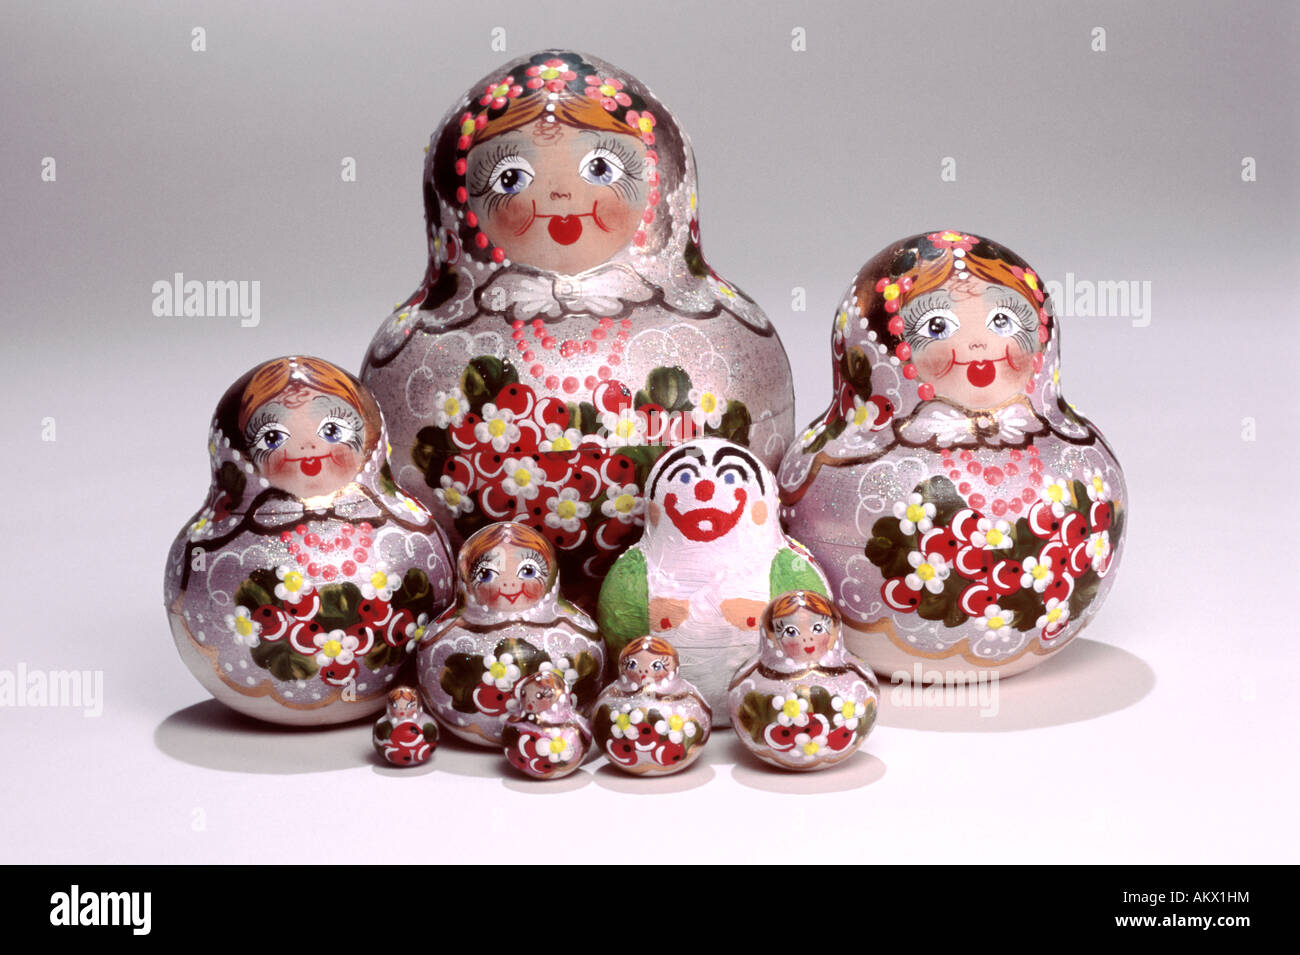 Russian Dolls with a Deviant. Grouping, white background. - Stock Image